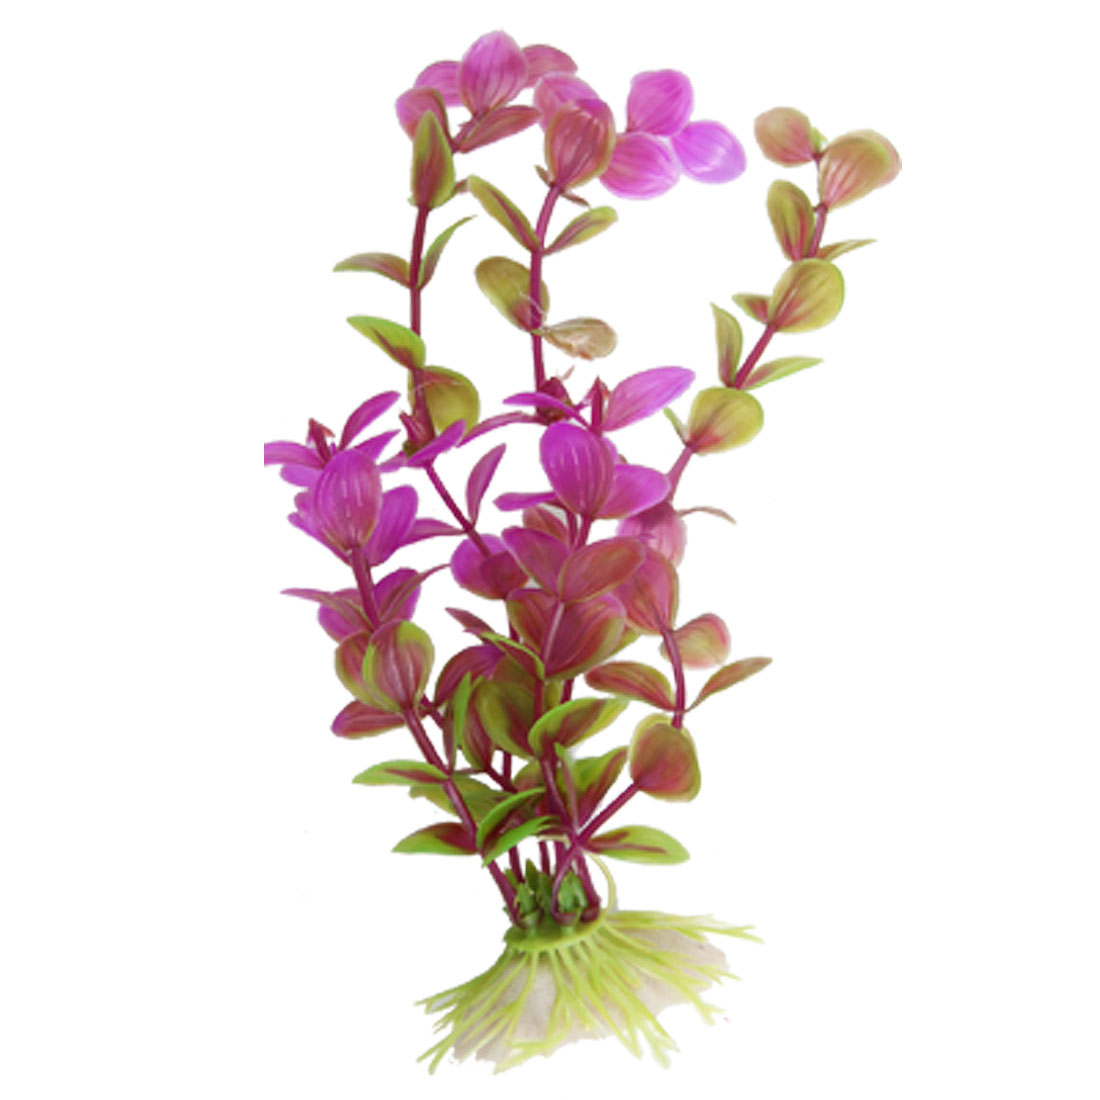 Aquarium Tank Plastic Plant Grasses Decor w Ceramic Base